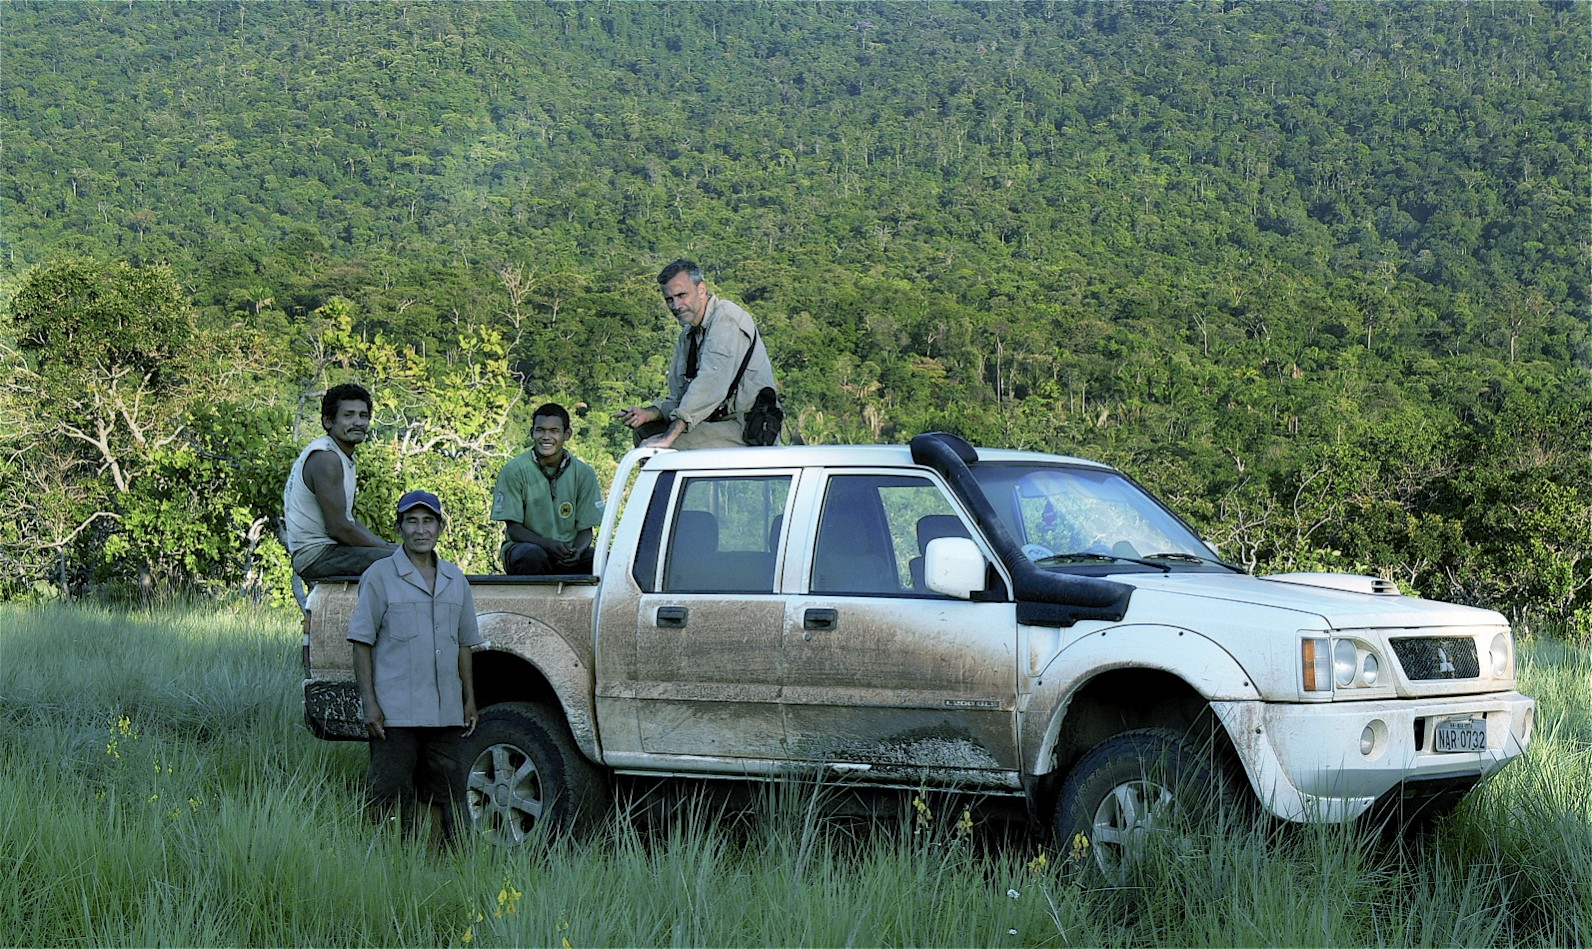 One of our transect search teams parked at the base of the Kanuku mountains. Sitting on the roof of the pickup is co-author L. Flamarion de Oliveira, a researcher with Brazil's Museu Nacional.  In the back of the pickup are Joseph and Samson, two of our Makushi technicians who actually walk the transects alone.